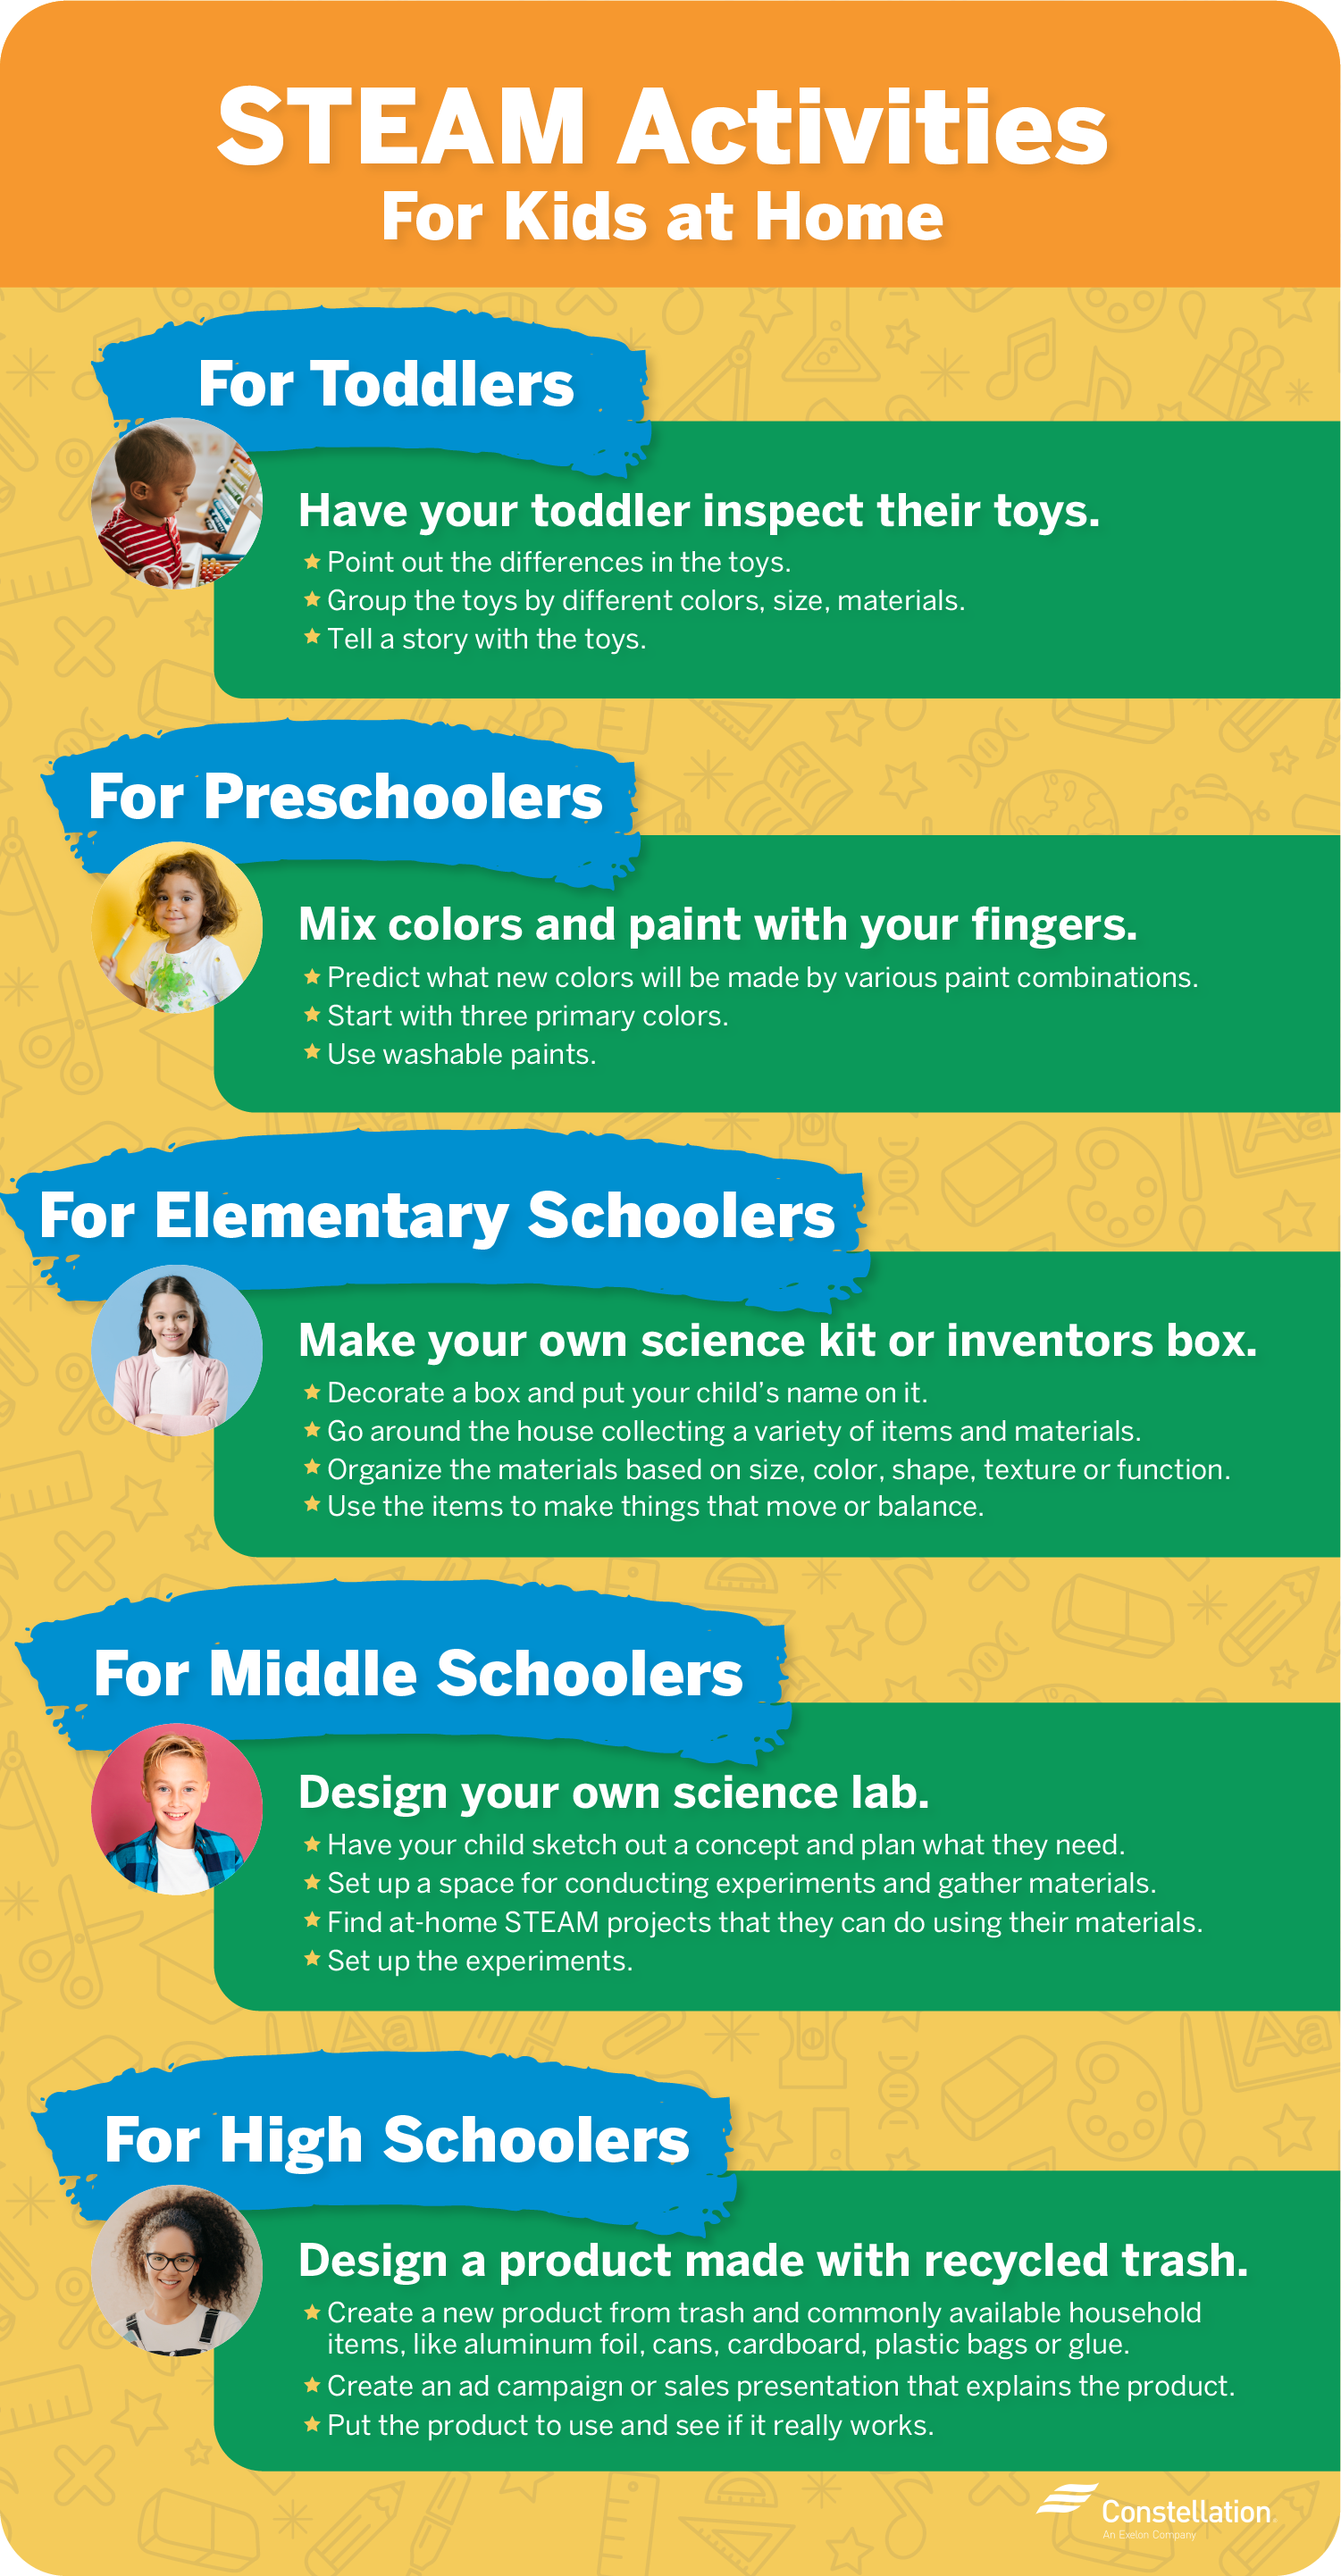 STEAM activities for kids at home